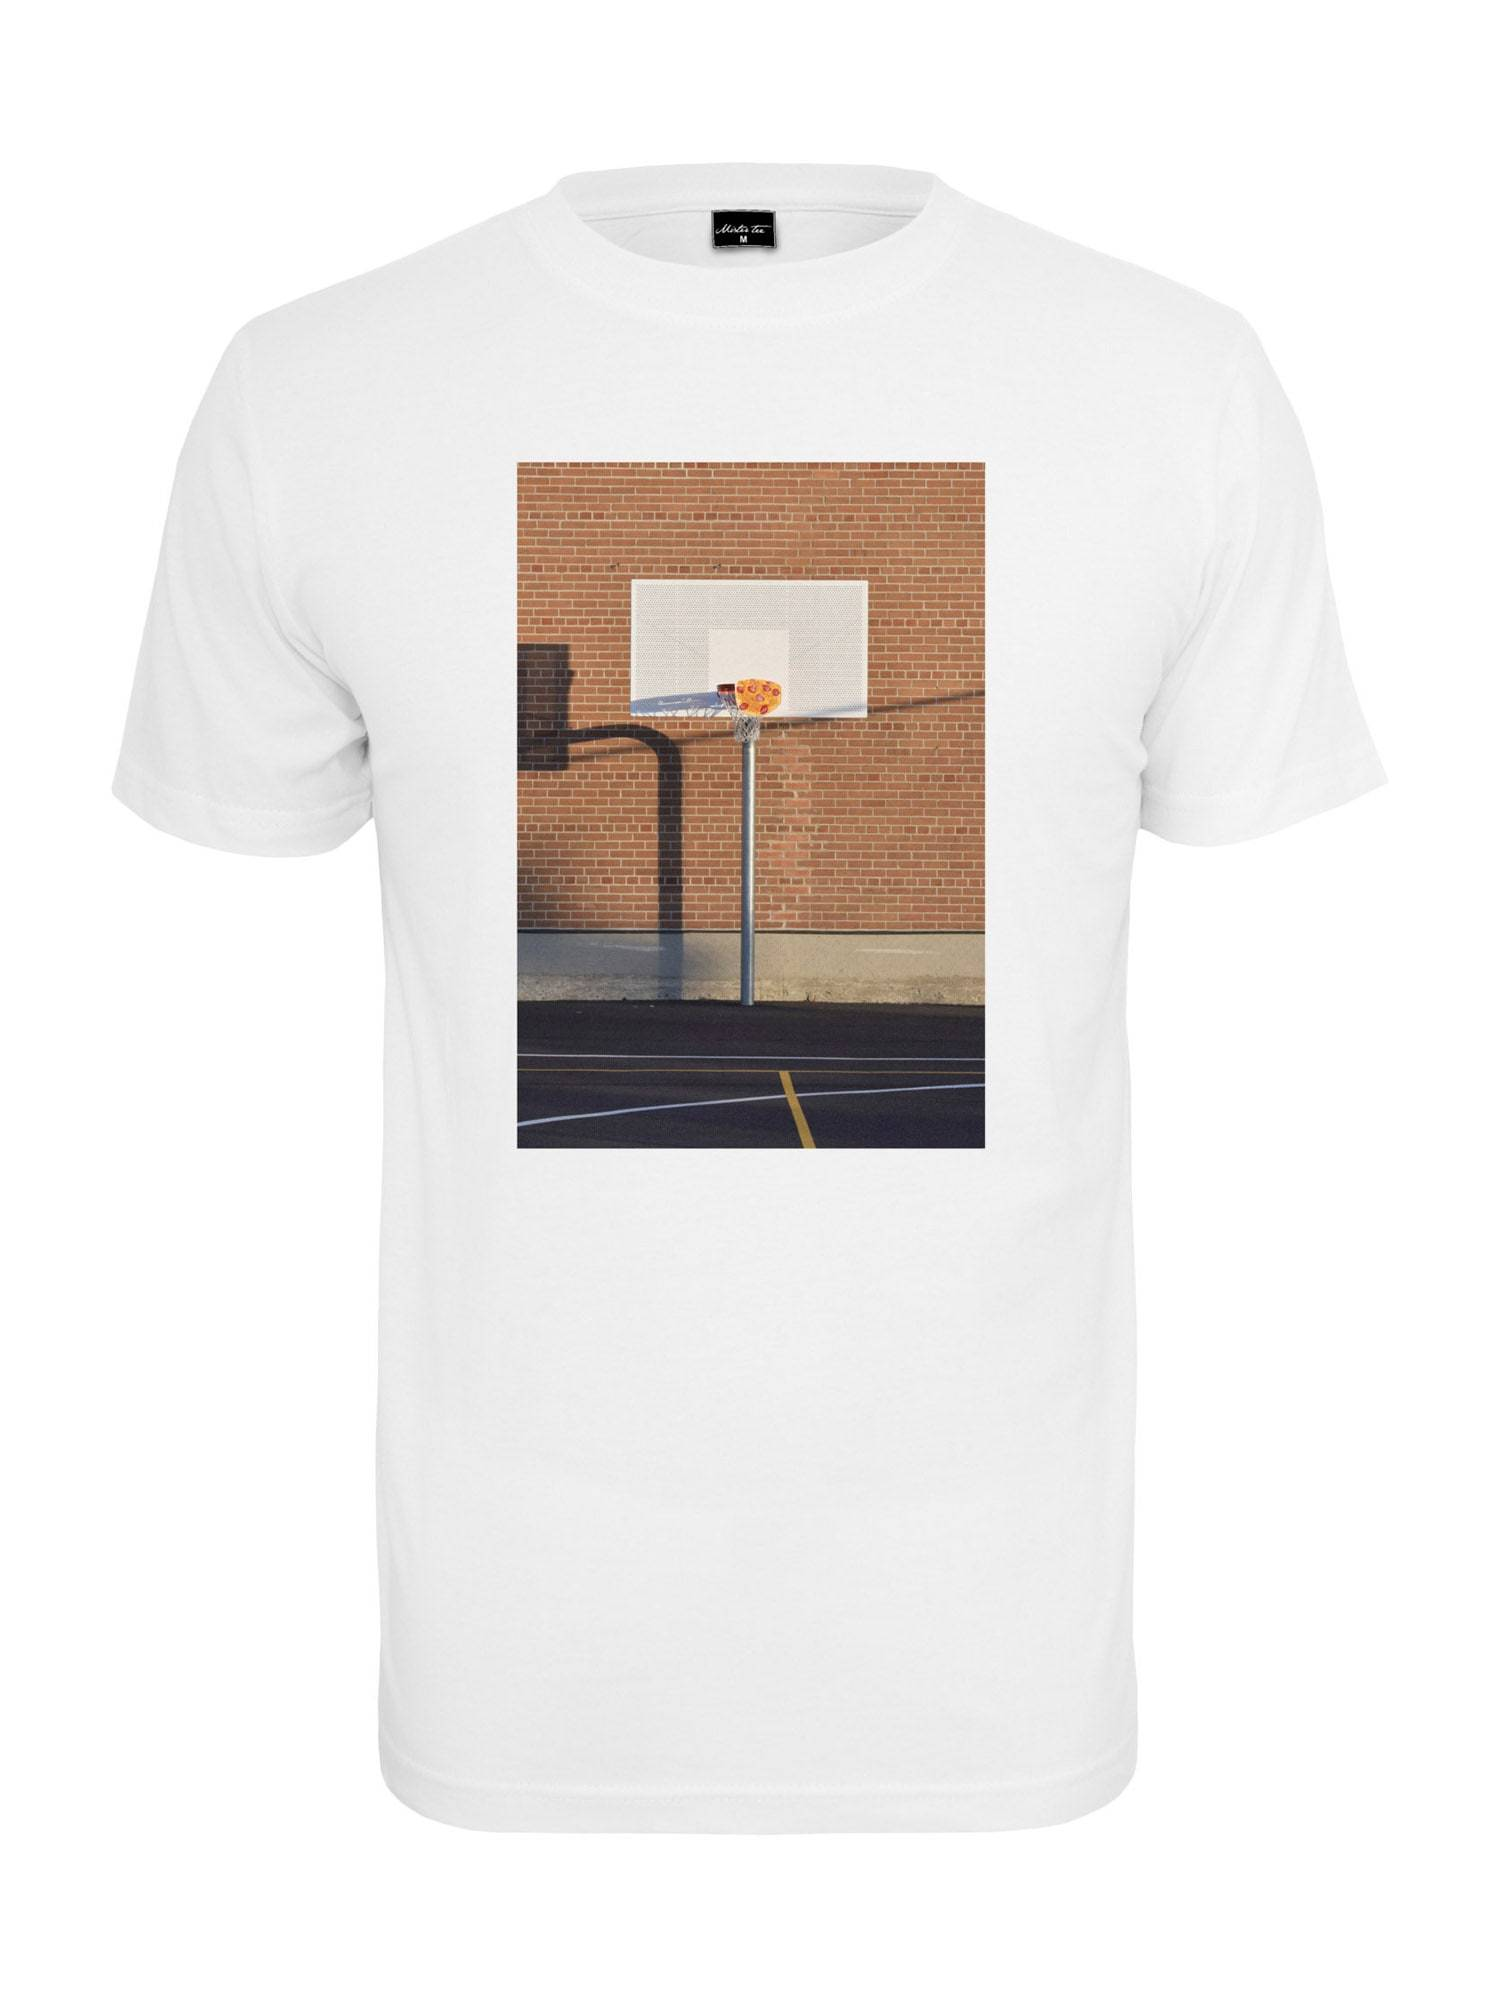 Tee T-Shirt 'Pizza Basketball Court'  - Blanc - Taille: S - male